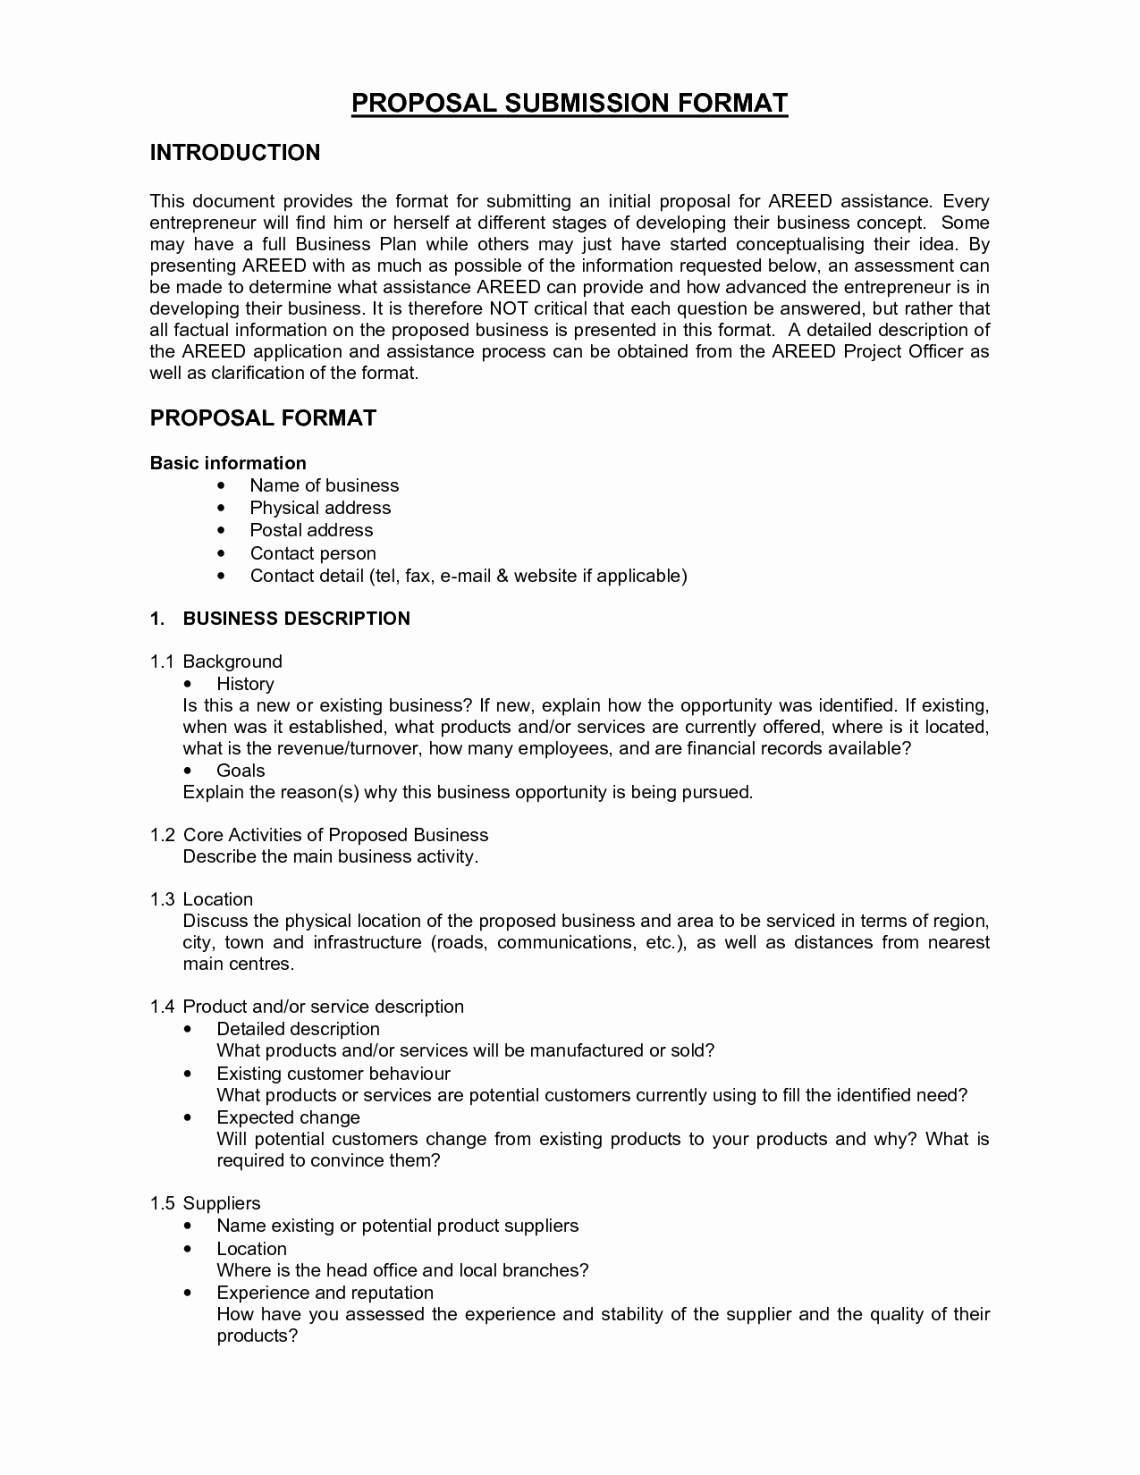 Business Report format Template Awesome Write Business Report Sample 2015 Student Essay Contest